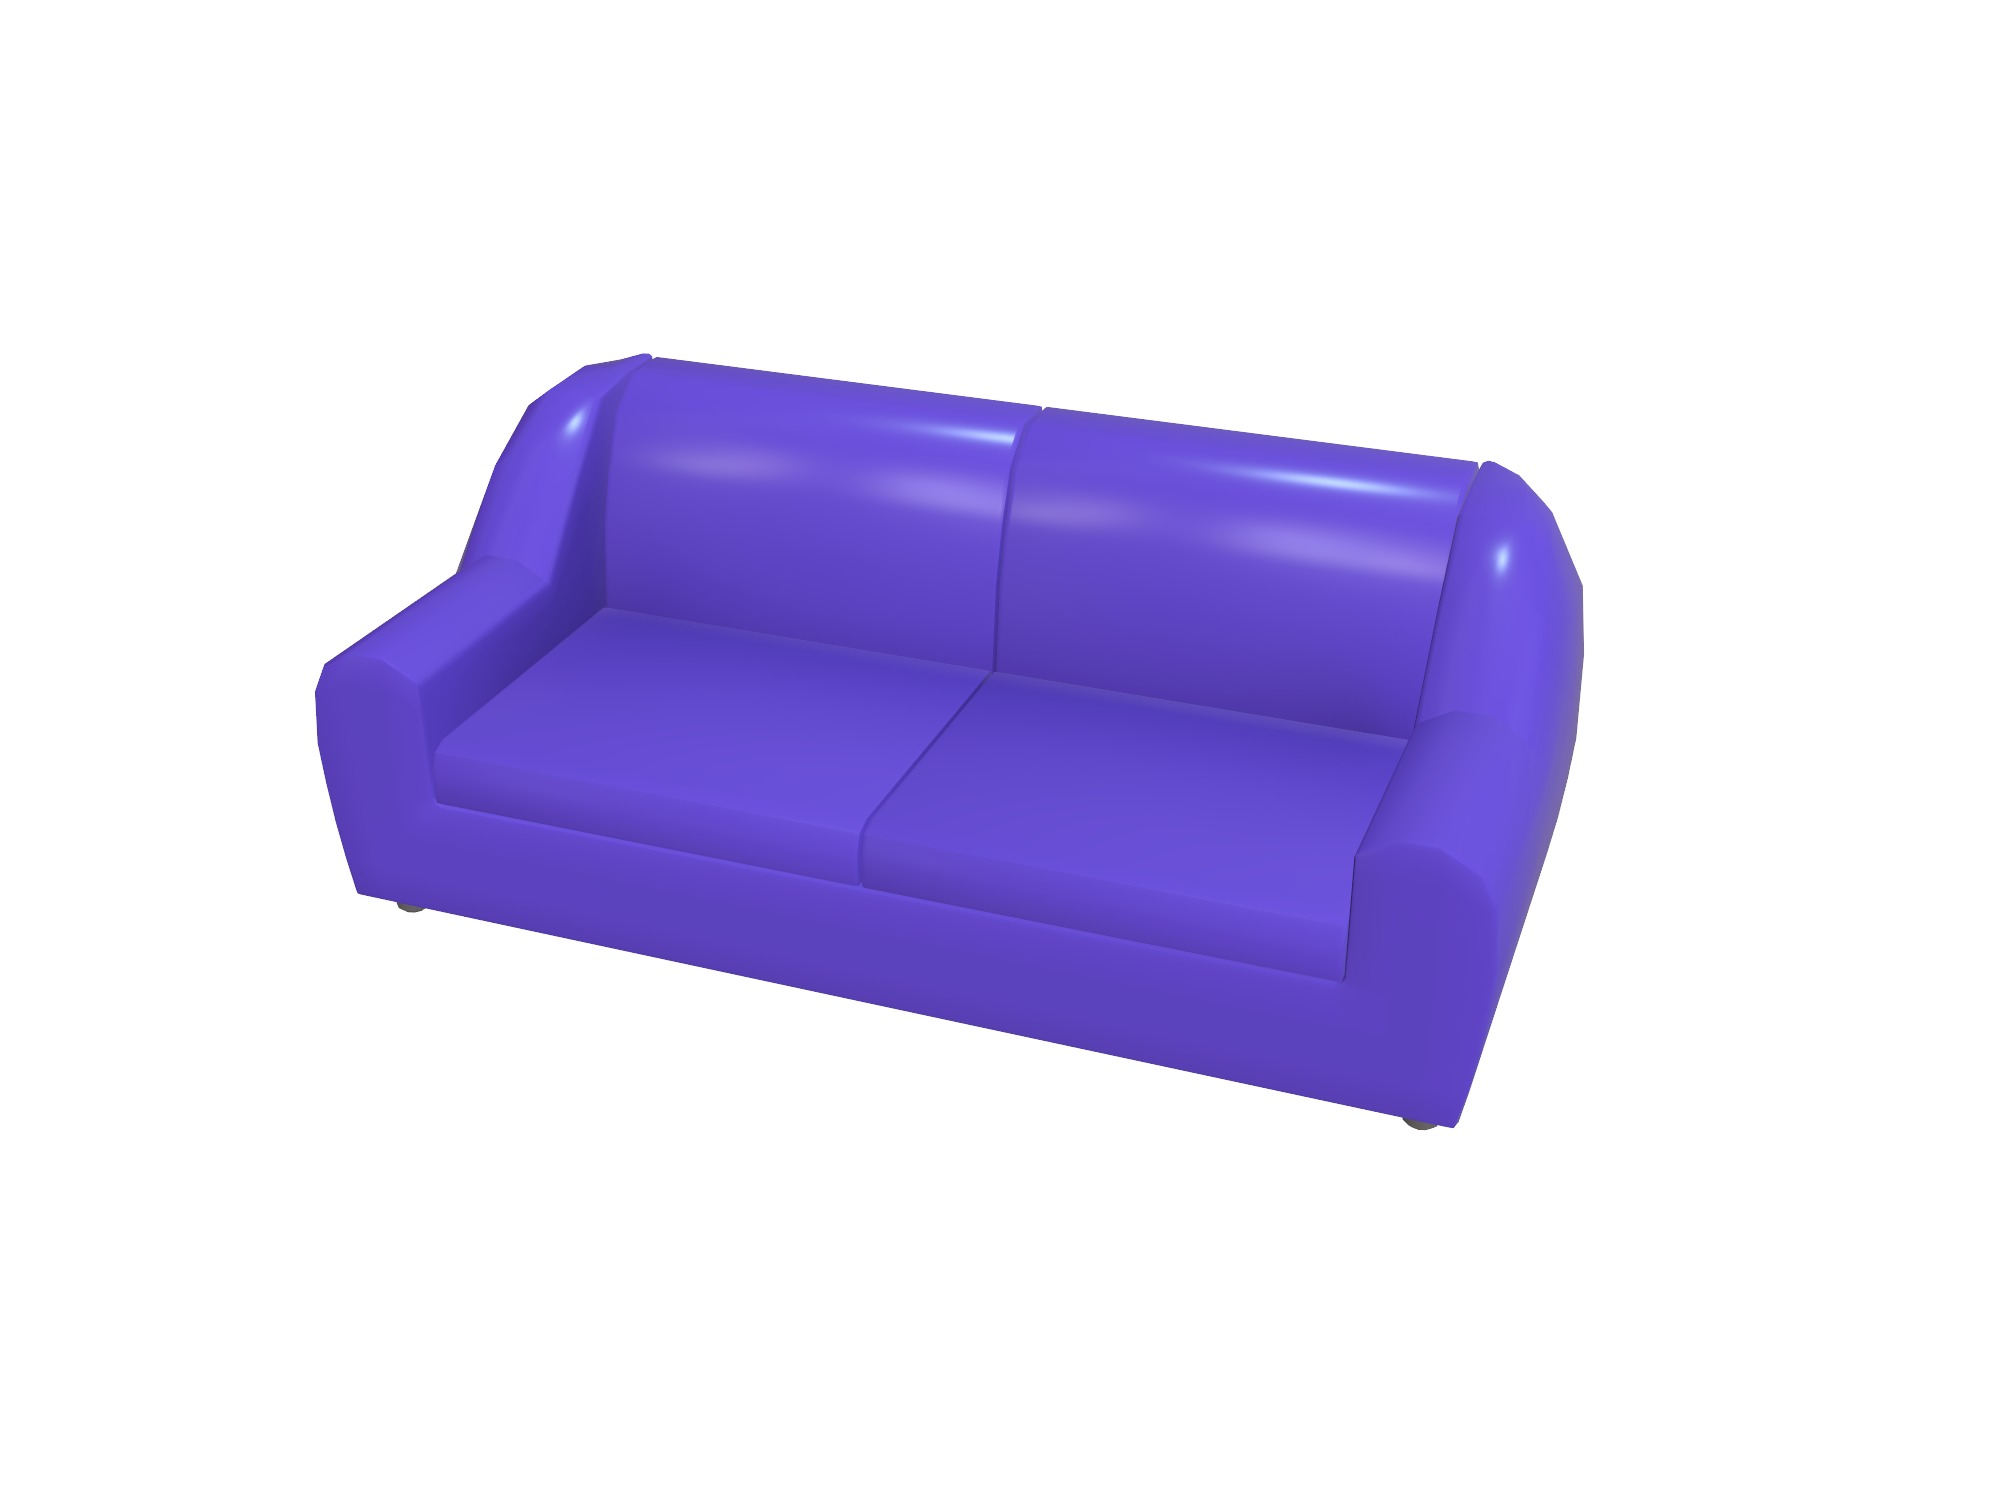 Sofa - 3D design by assets Jun 3, 2018